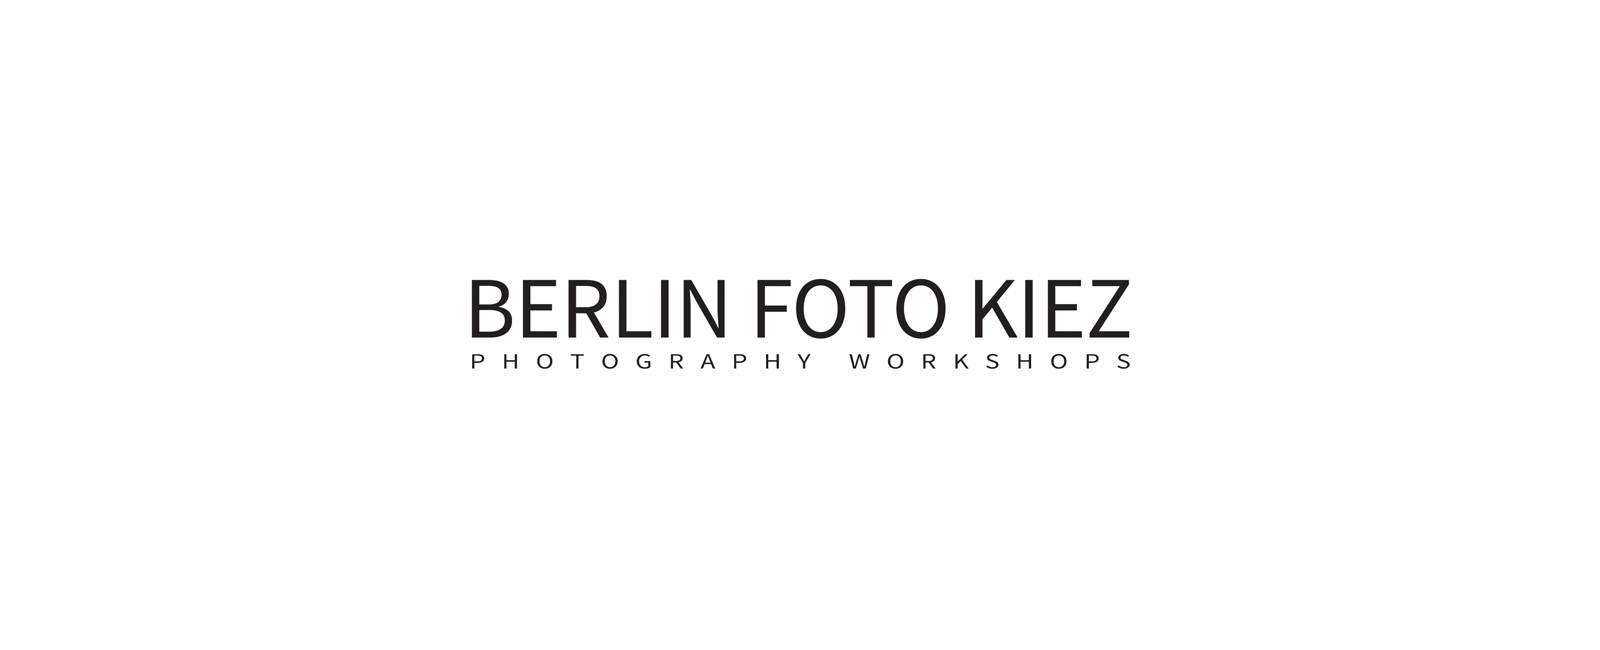 Submission Deadline On April 14, 2017: Berlin Foto Kiez | Antoine D'Agata Workshop